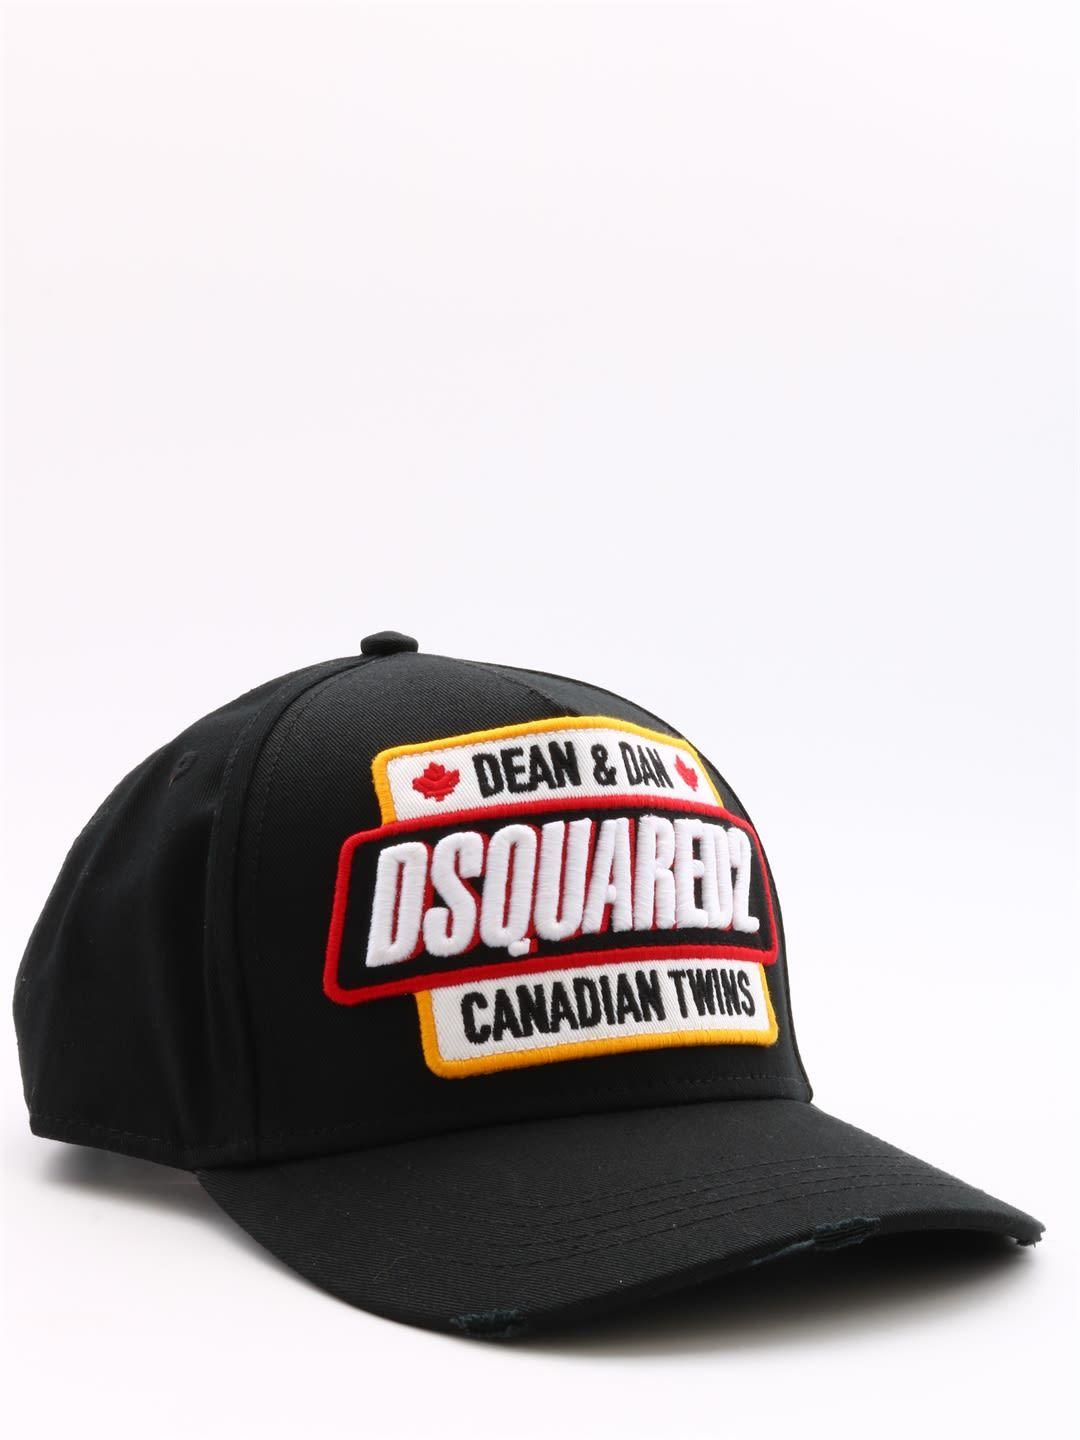 037efa71b DSQUARED2 CANADIAN TWINS HAT BLACK. #dsquared2 | Dsquared2 in 2019 ...